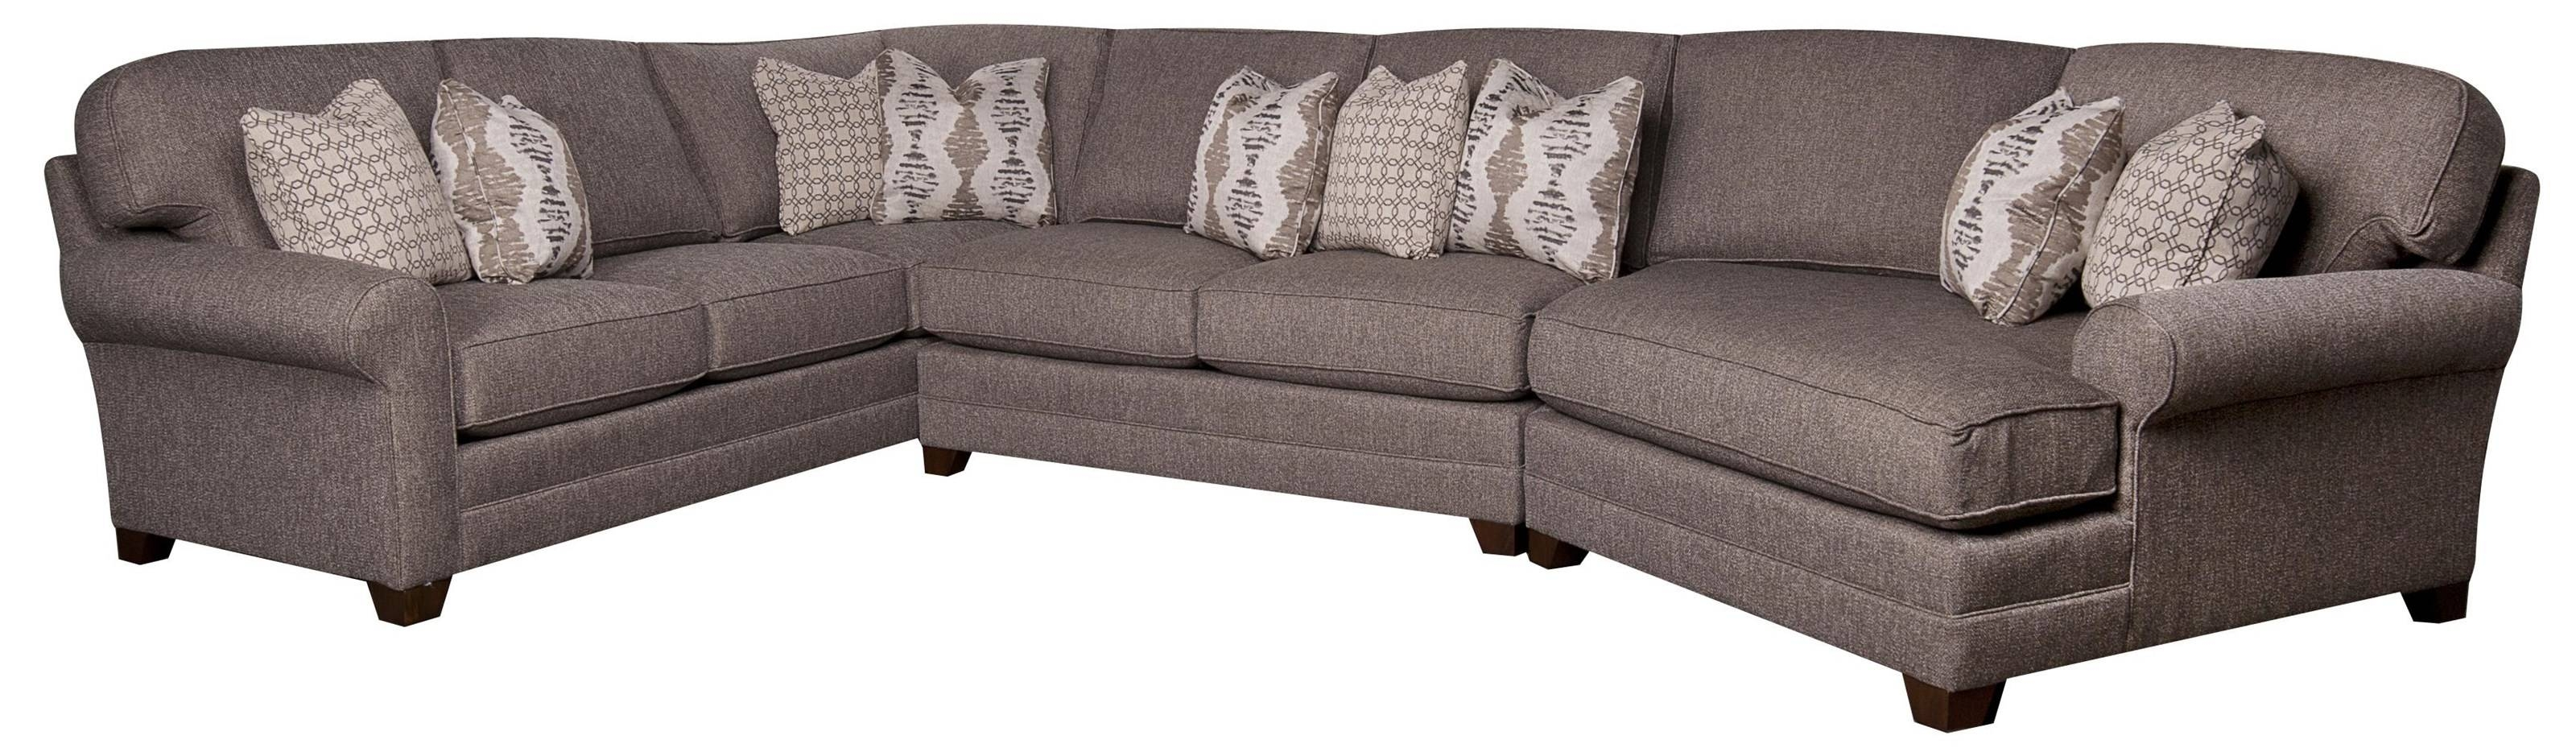 6 piece modular sectional sofa inflatable couch 30 ideas of